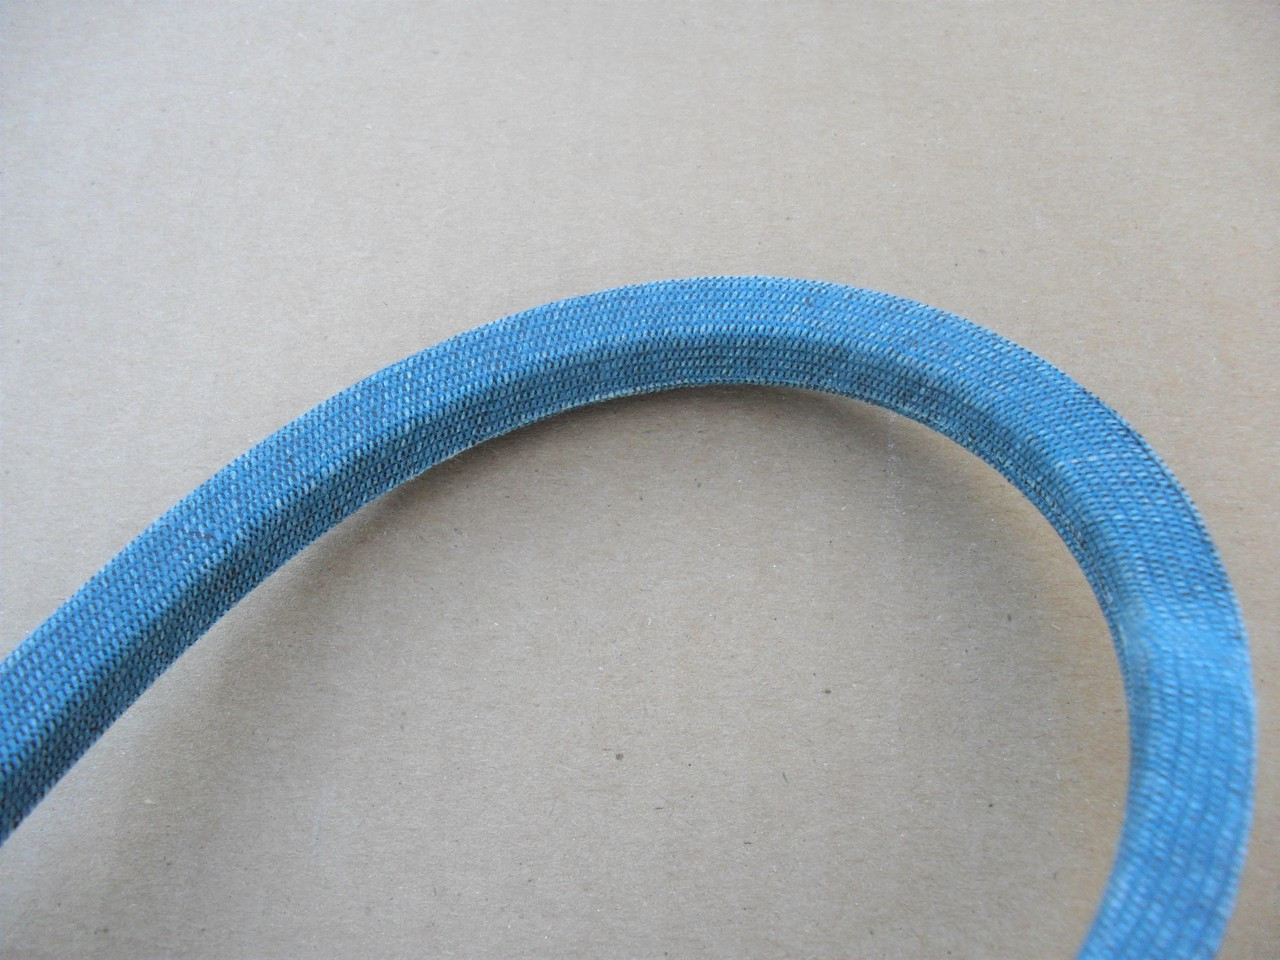 LAWN BOY 604498 made with Kevlar Replacement Belt